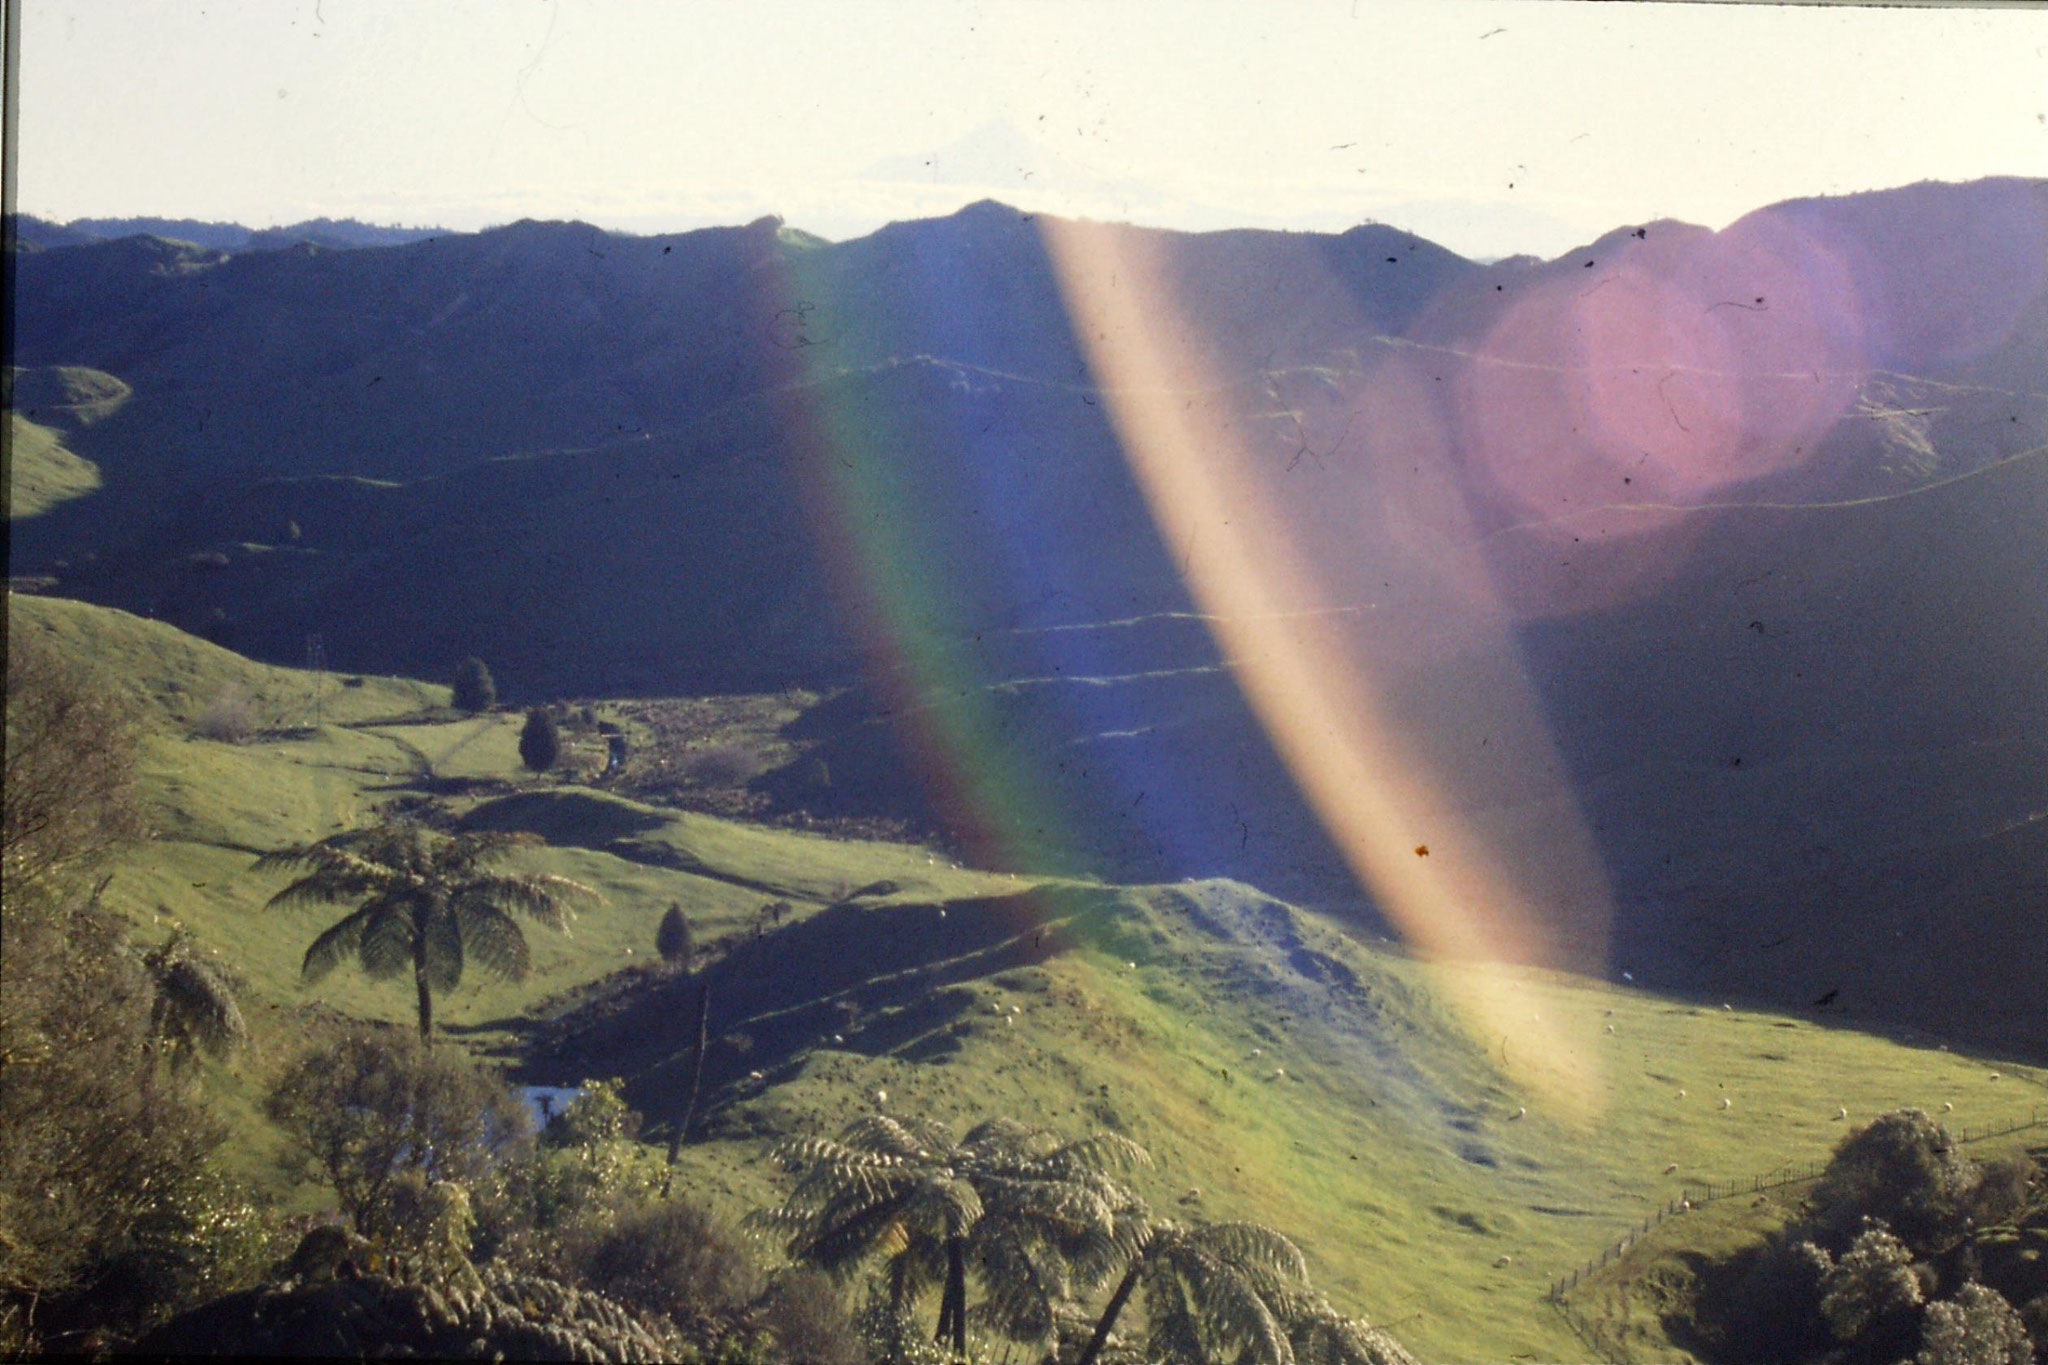 28/8/1990: 22: Mt Egmont from Pohokura Saddle